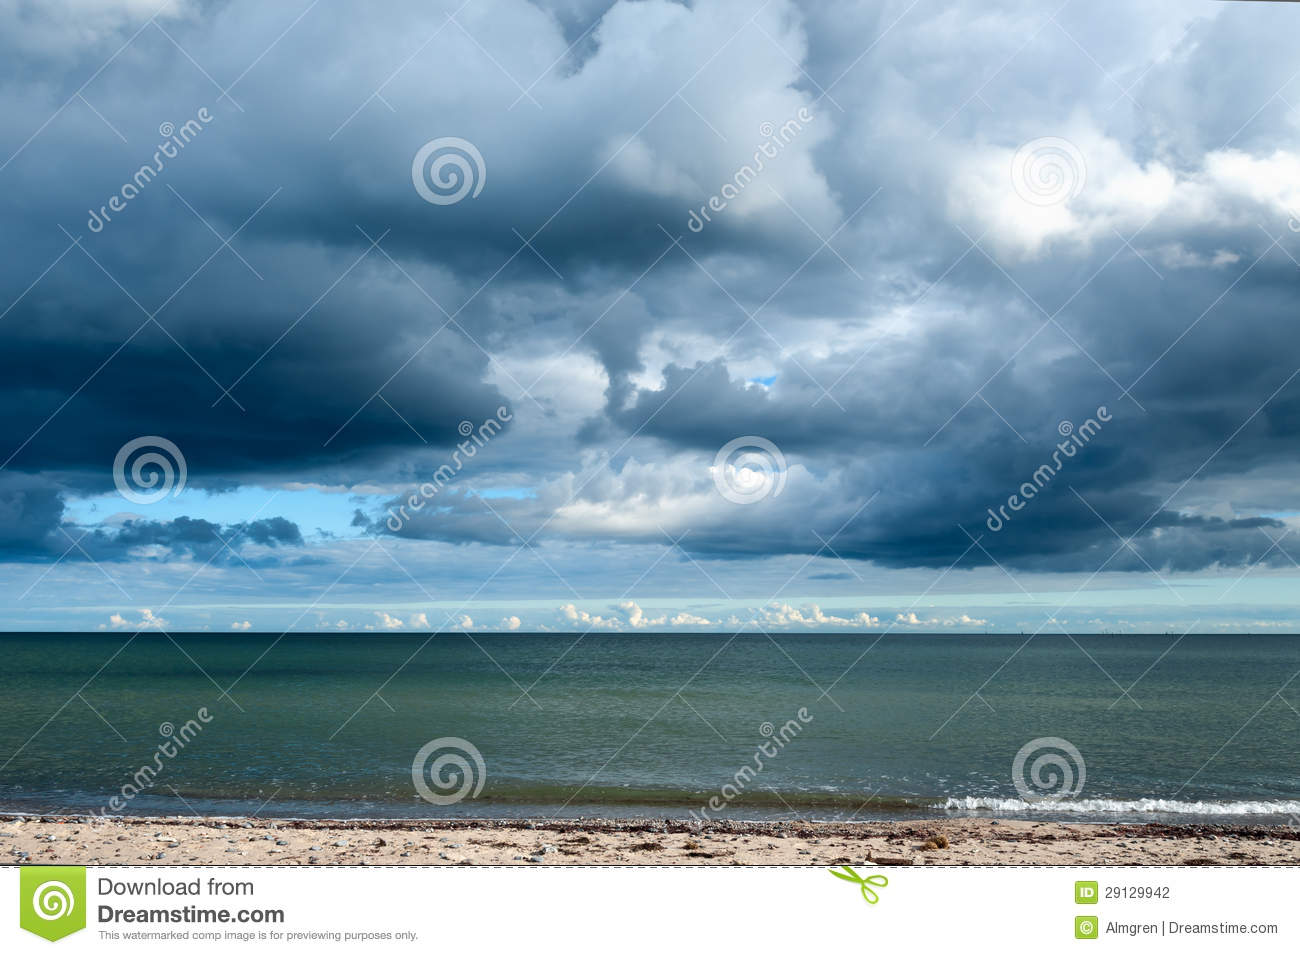 Storm Clouds Gathering Clipart.